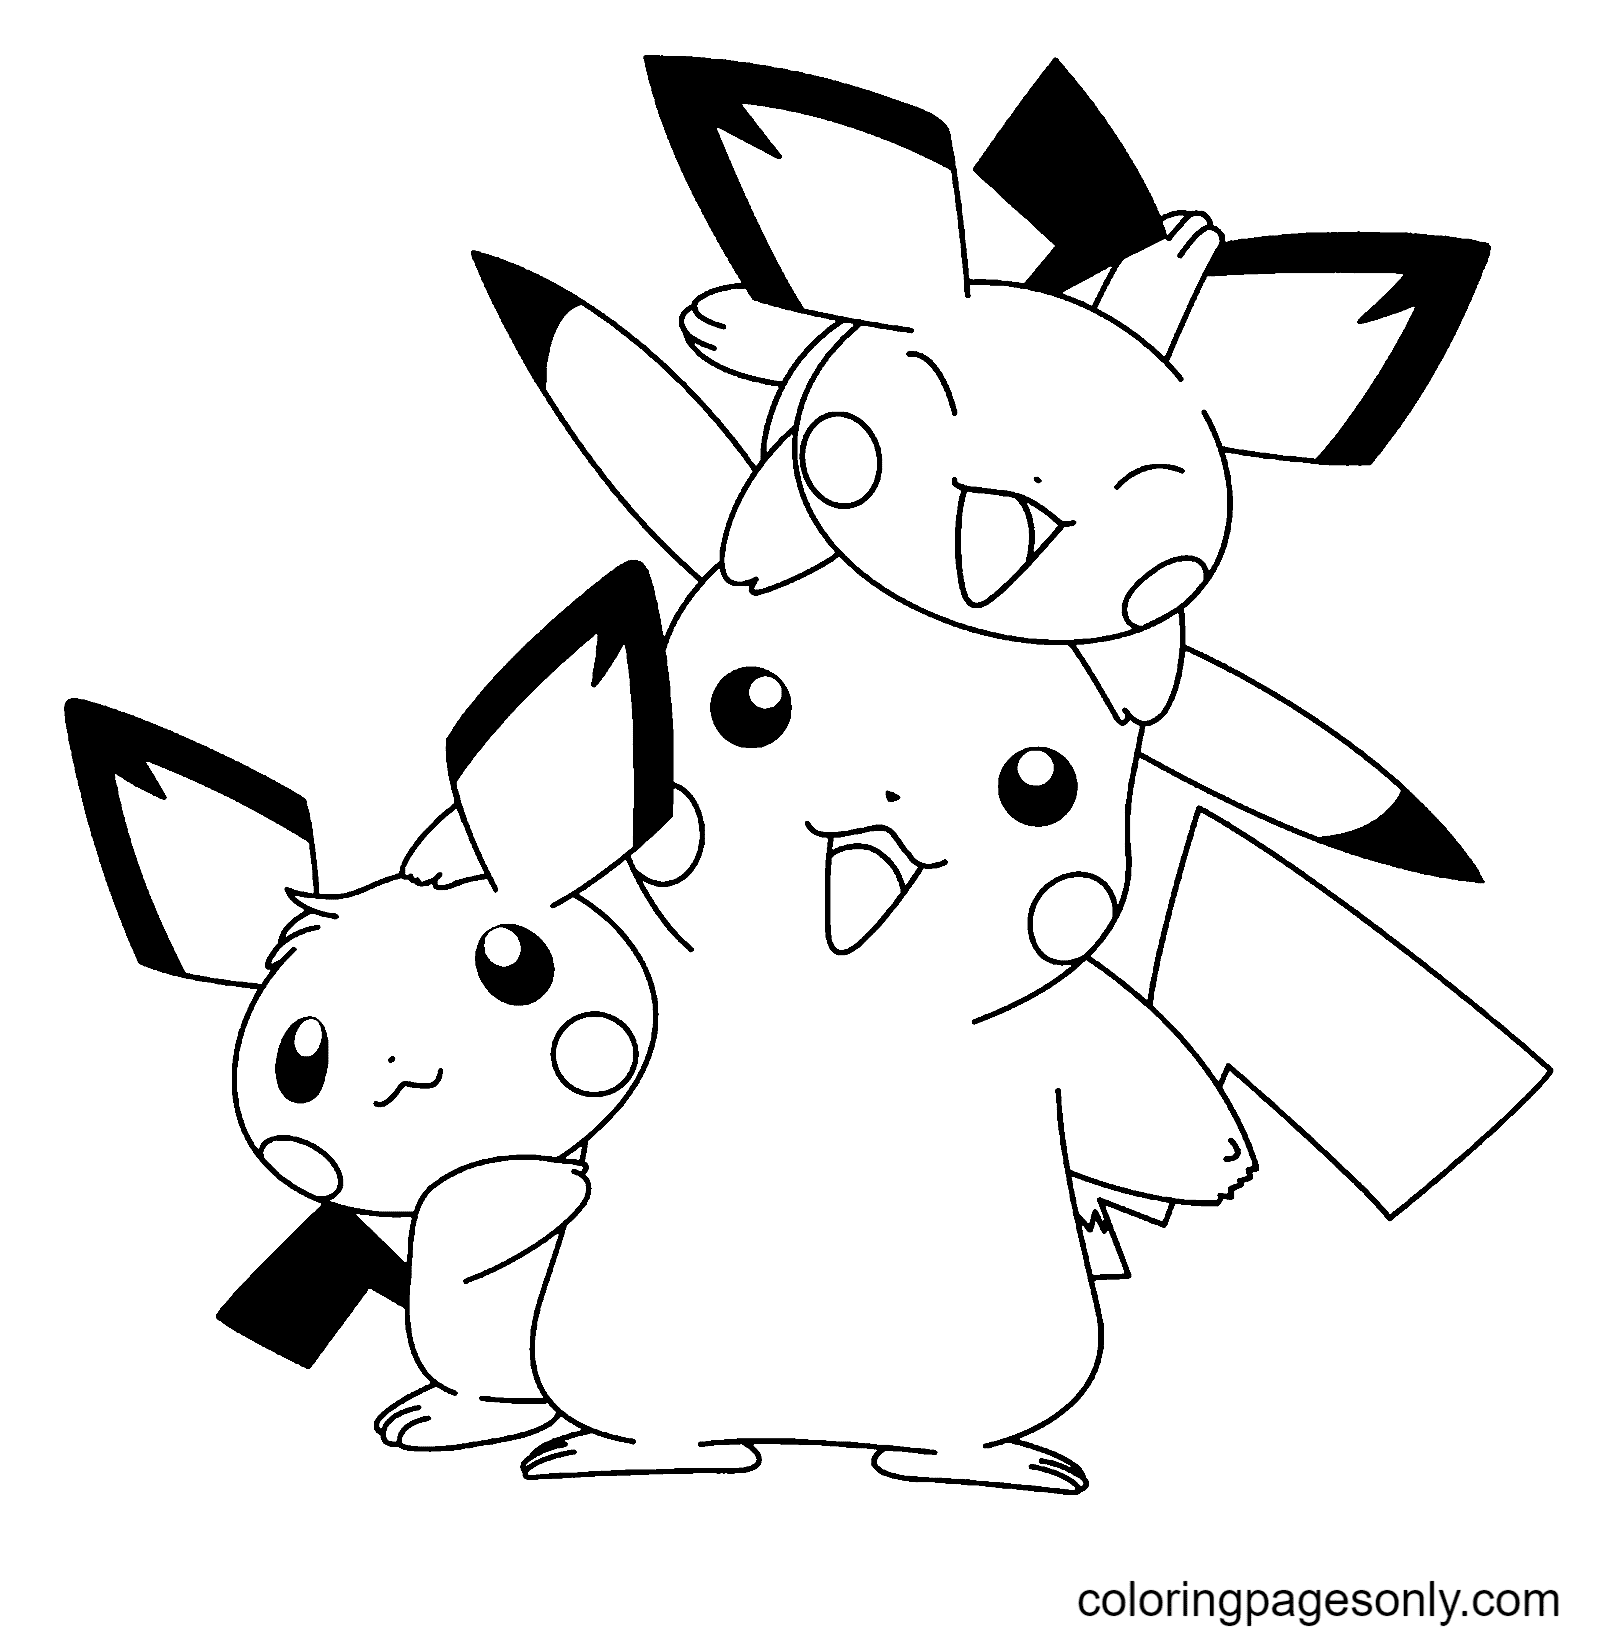 Pokemon Pikachu and Friends Coloring Page